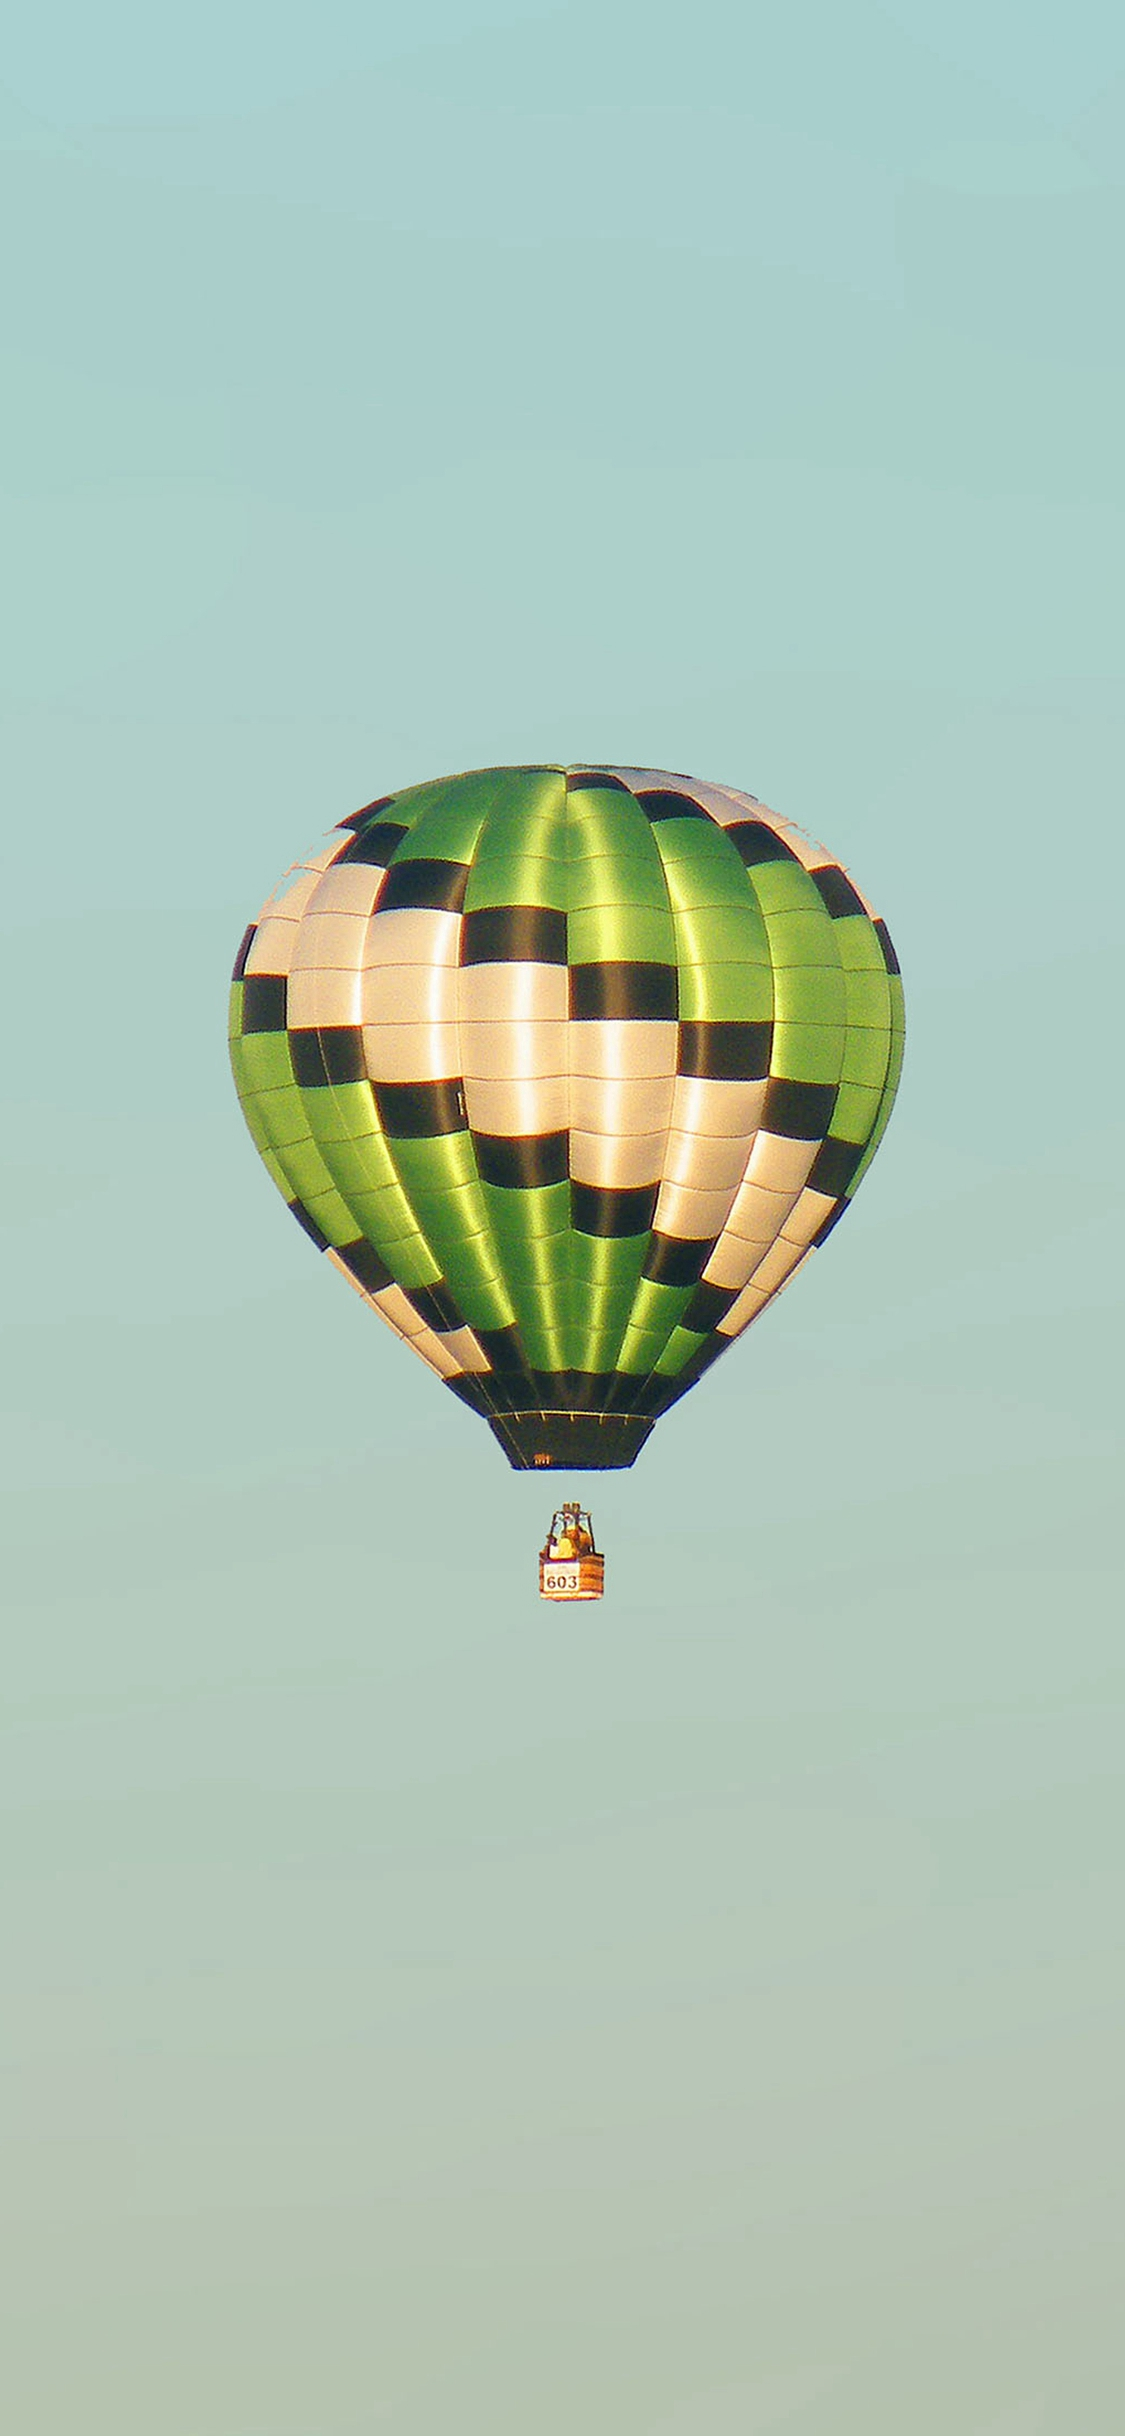 Fly Green Home Balloon Iphone X Wallpapers Free Download